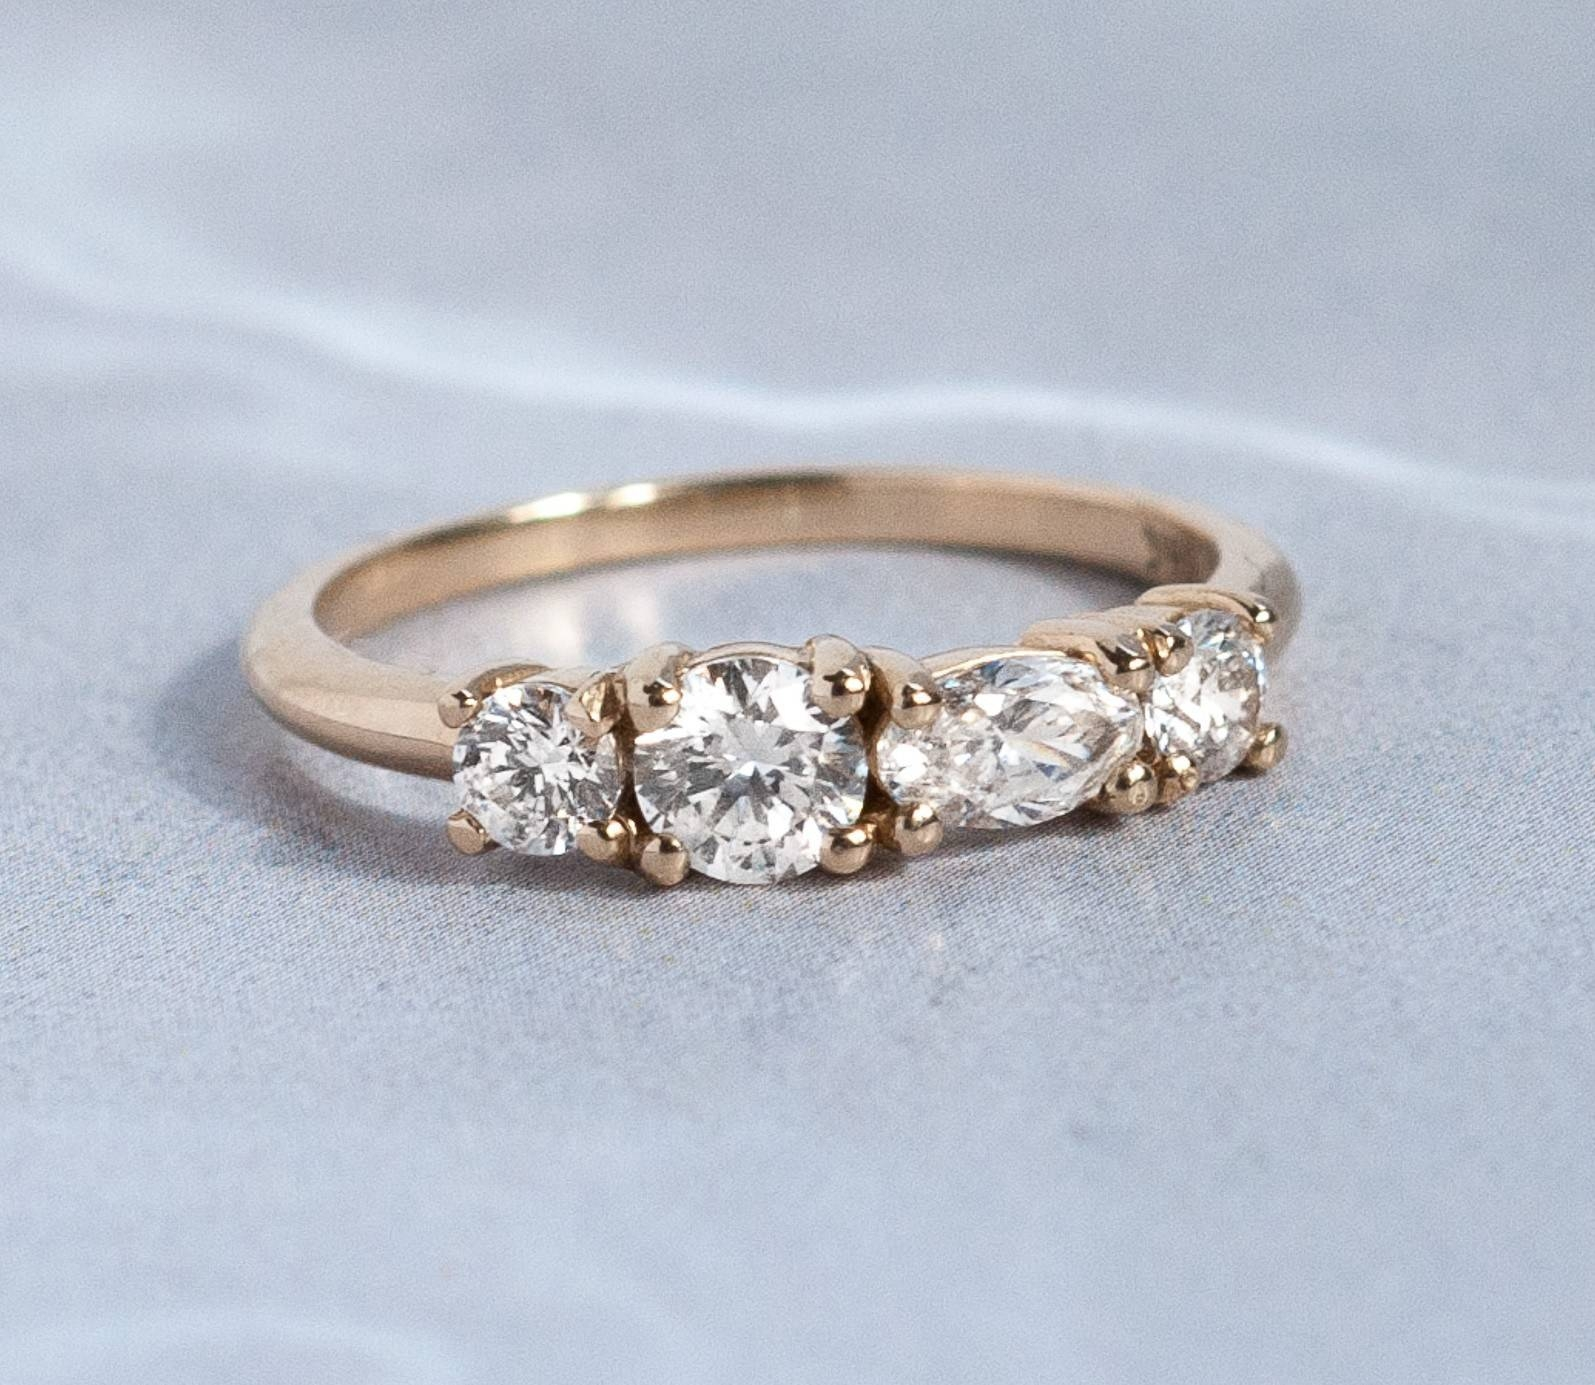 Bling In The New Year With Alternative Engagement Rings – Bario For Diamond Alternative Wedding Rings (View 4 of 15)